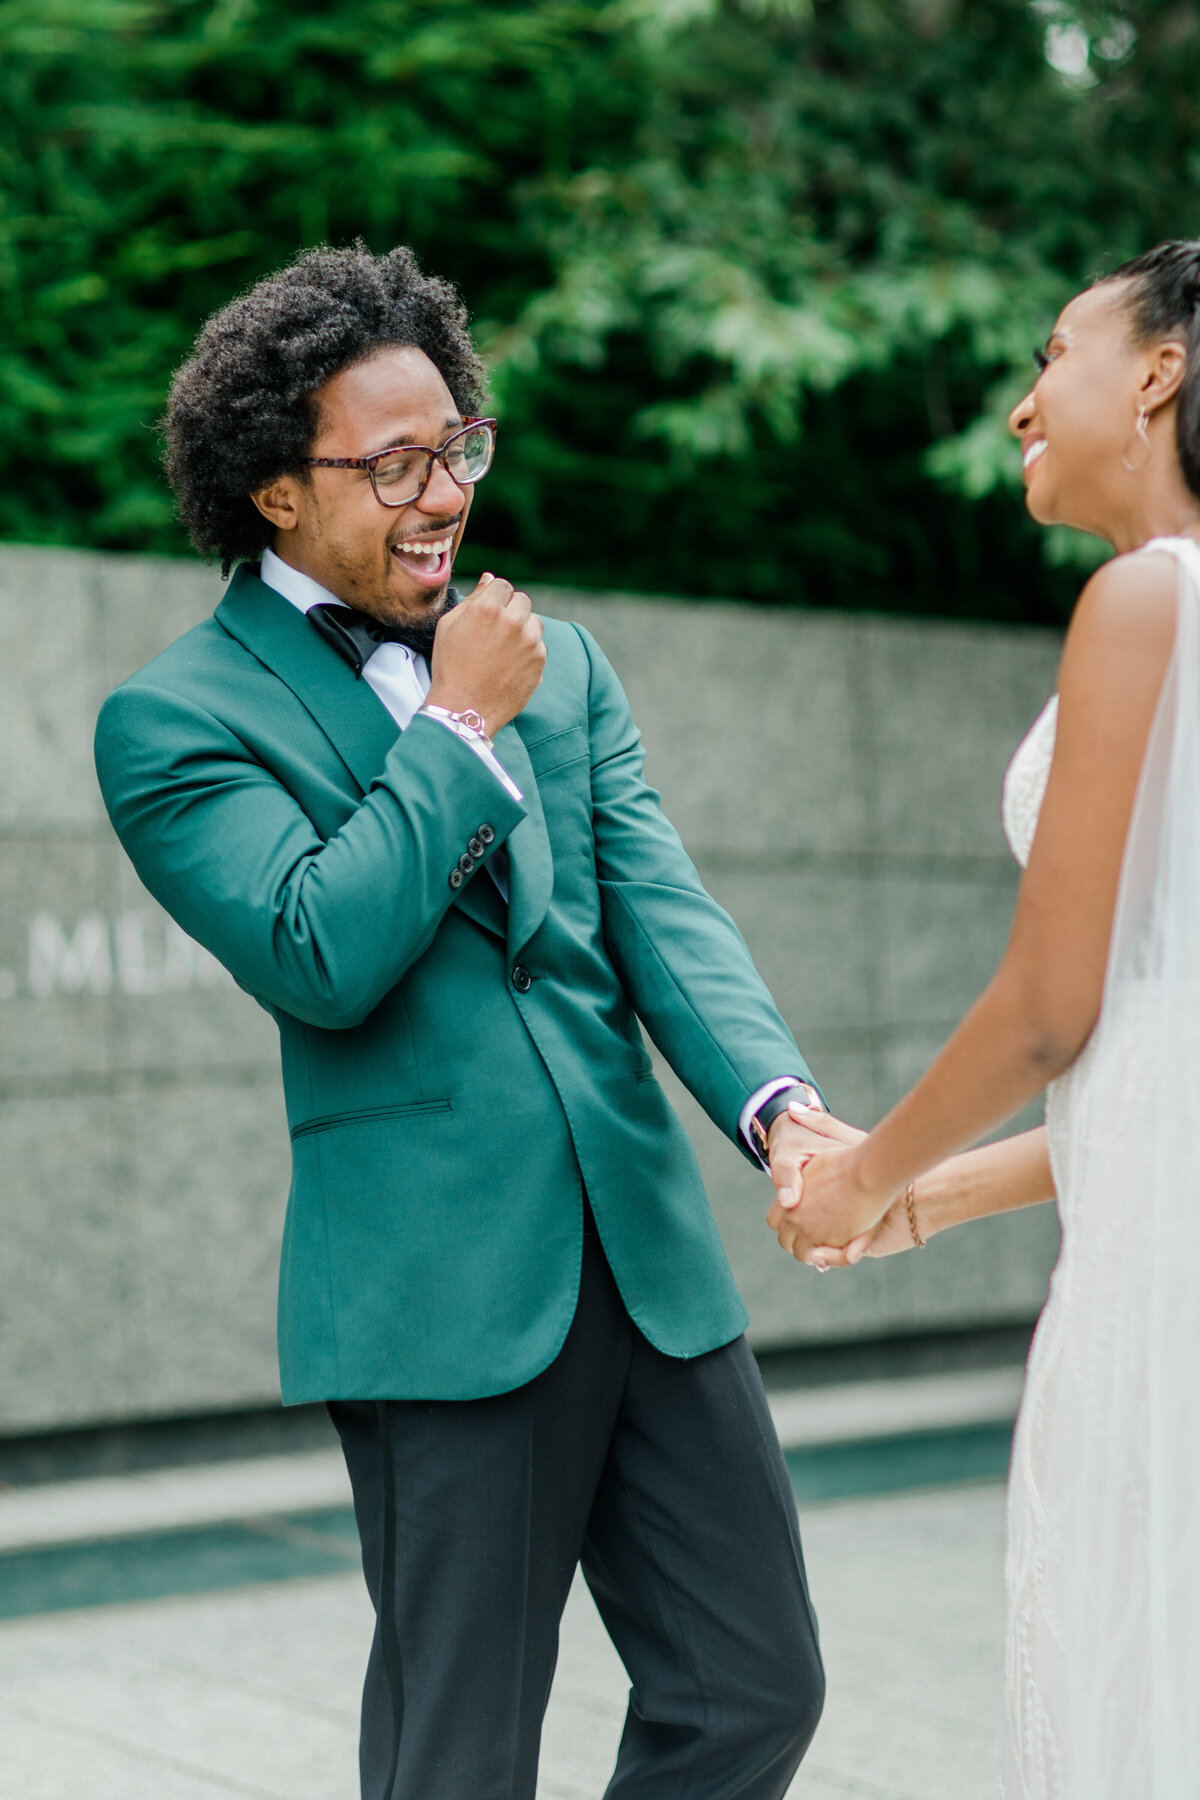 Solomon_Tkeyah_Micro_COVID_Wedding_Washington_DC_War_Memorial_MLK_Memorial_Linoln_Memorial_Angelika_Johns_Photography-3725